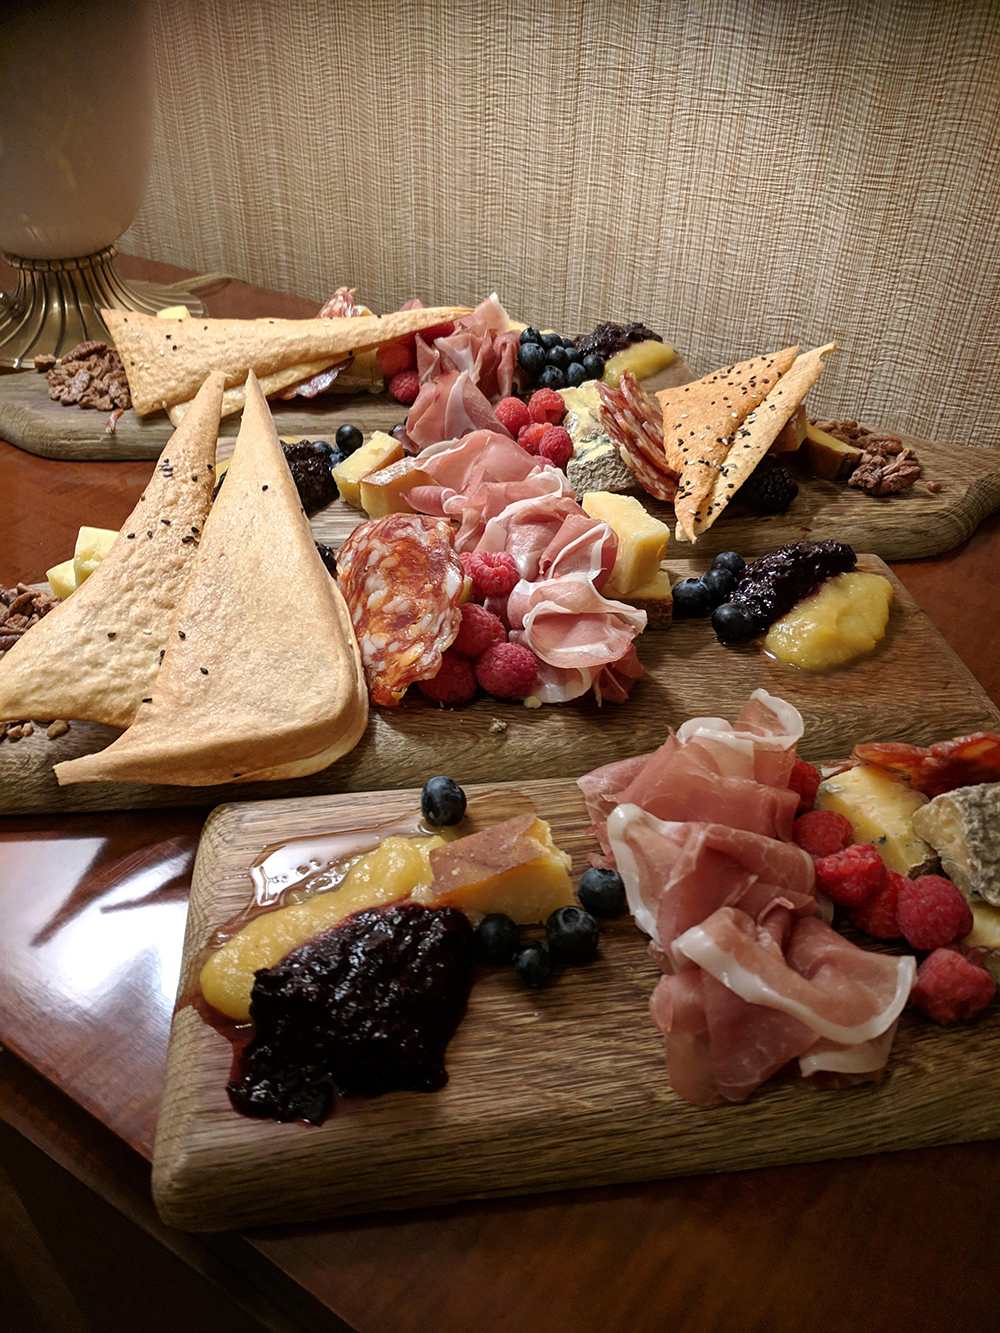 Charcuterie boards make for a lovely spa snack.